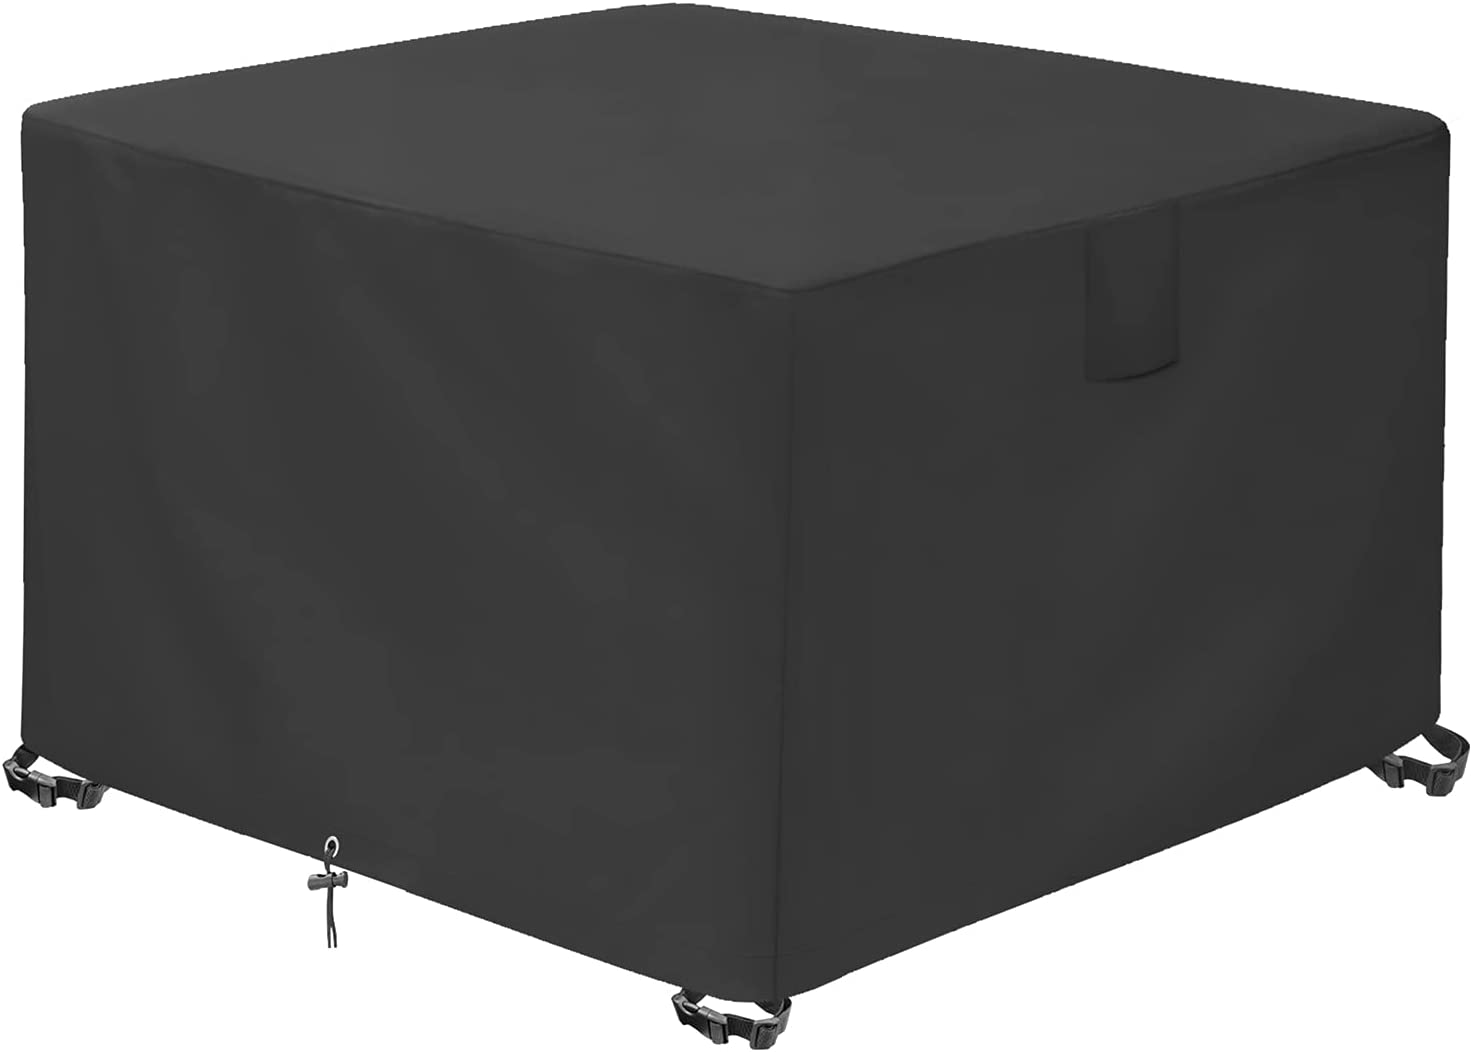 GARDRIT Patio Fire Pit Cover - 100% Waterproof Square Gas Firepit Table Cover Outdoor 36x36x20inch- Heavy Duty 600D Oxford Fabric with Thick PVC Coating, Anti-Crack, Anti-Fade